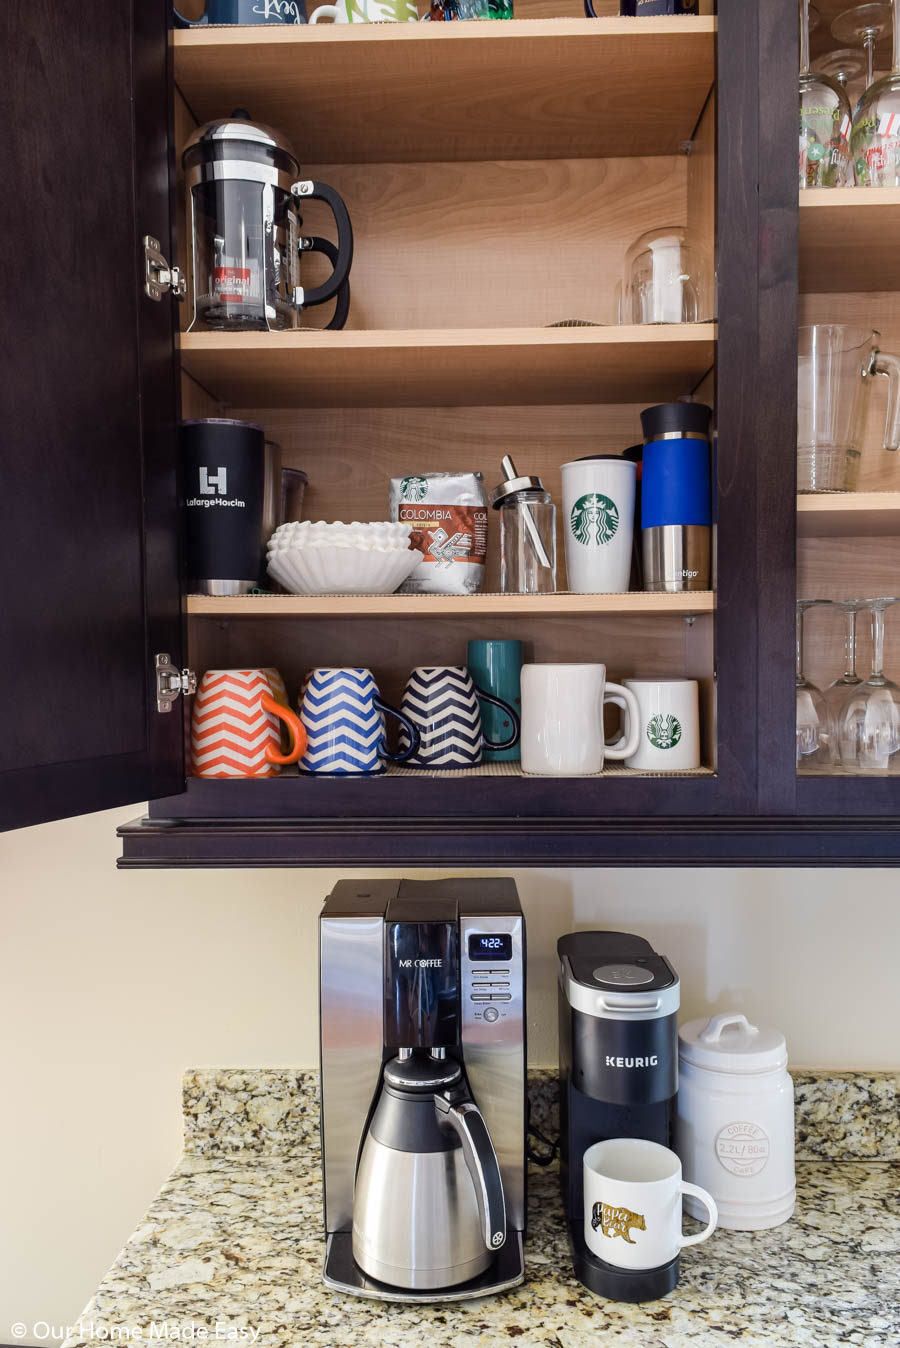 our coffee mug and coffee cabinet is conveniently located right above our coffee makers